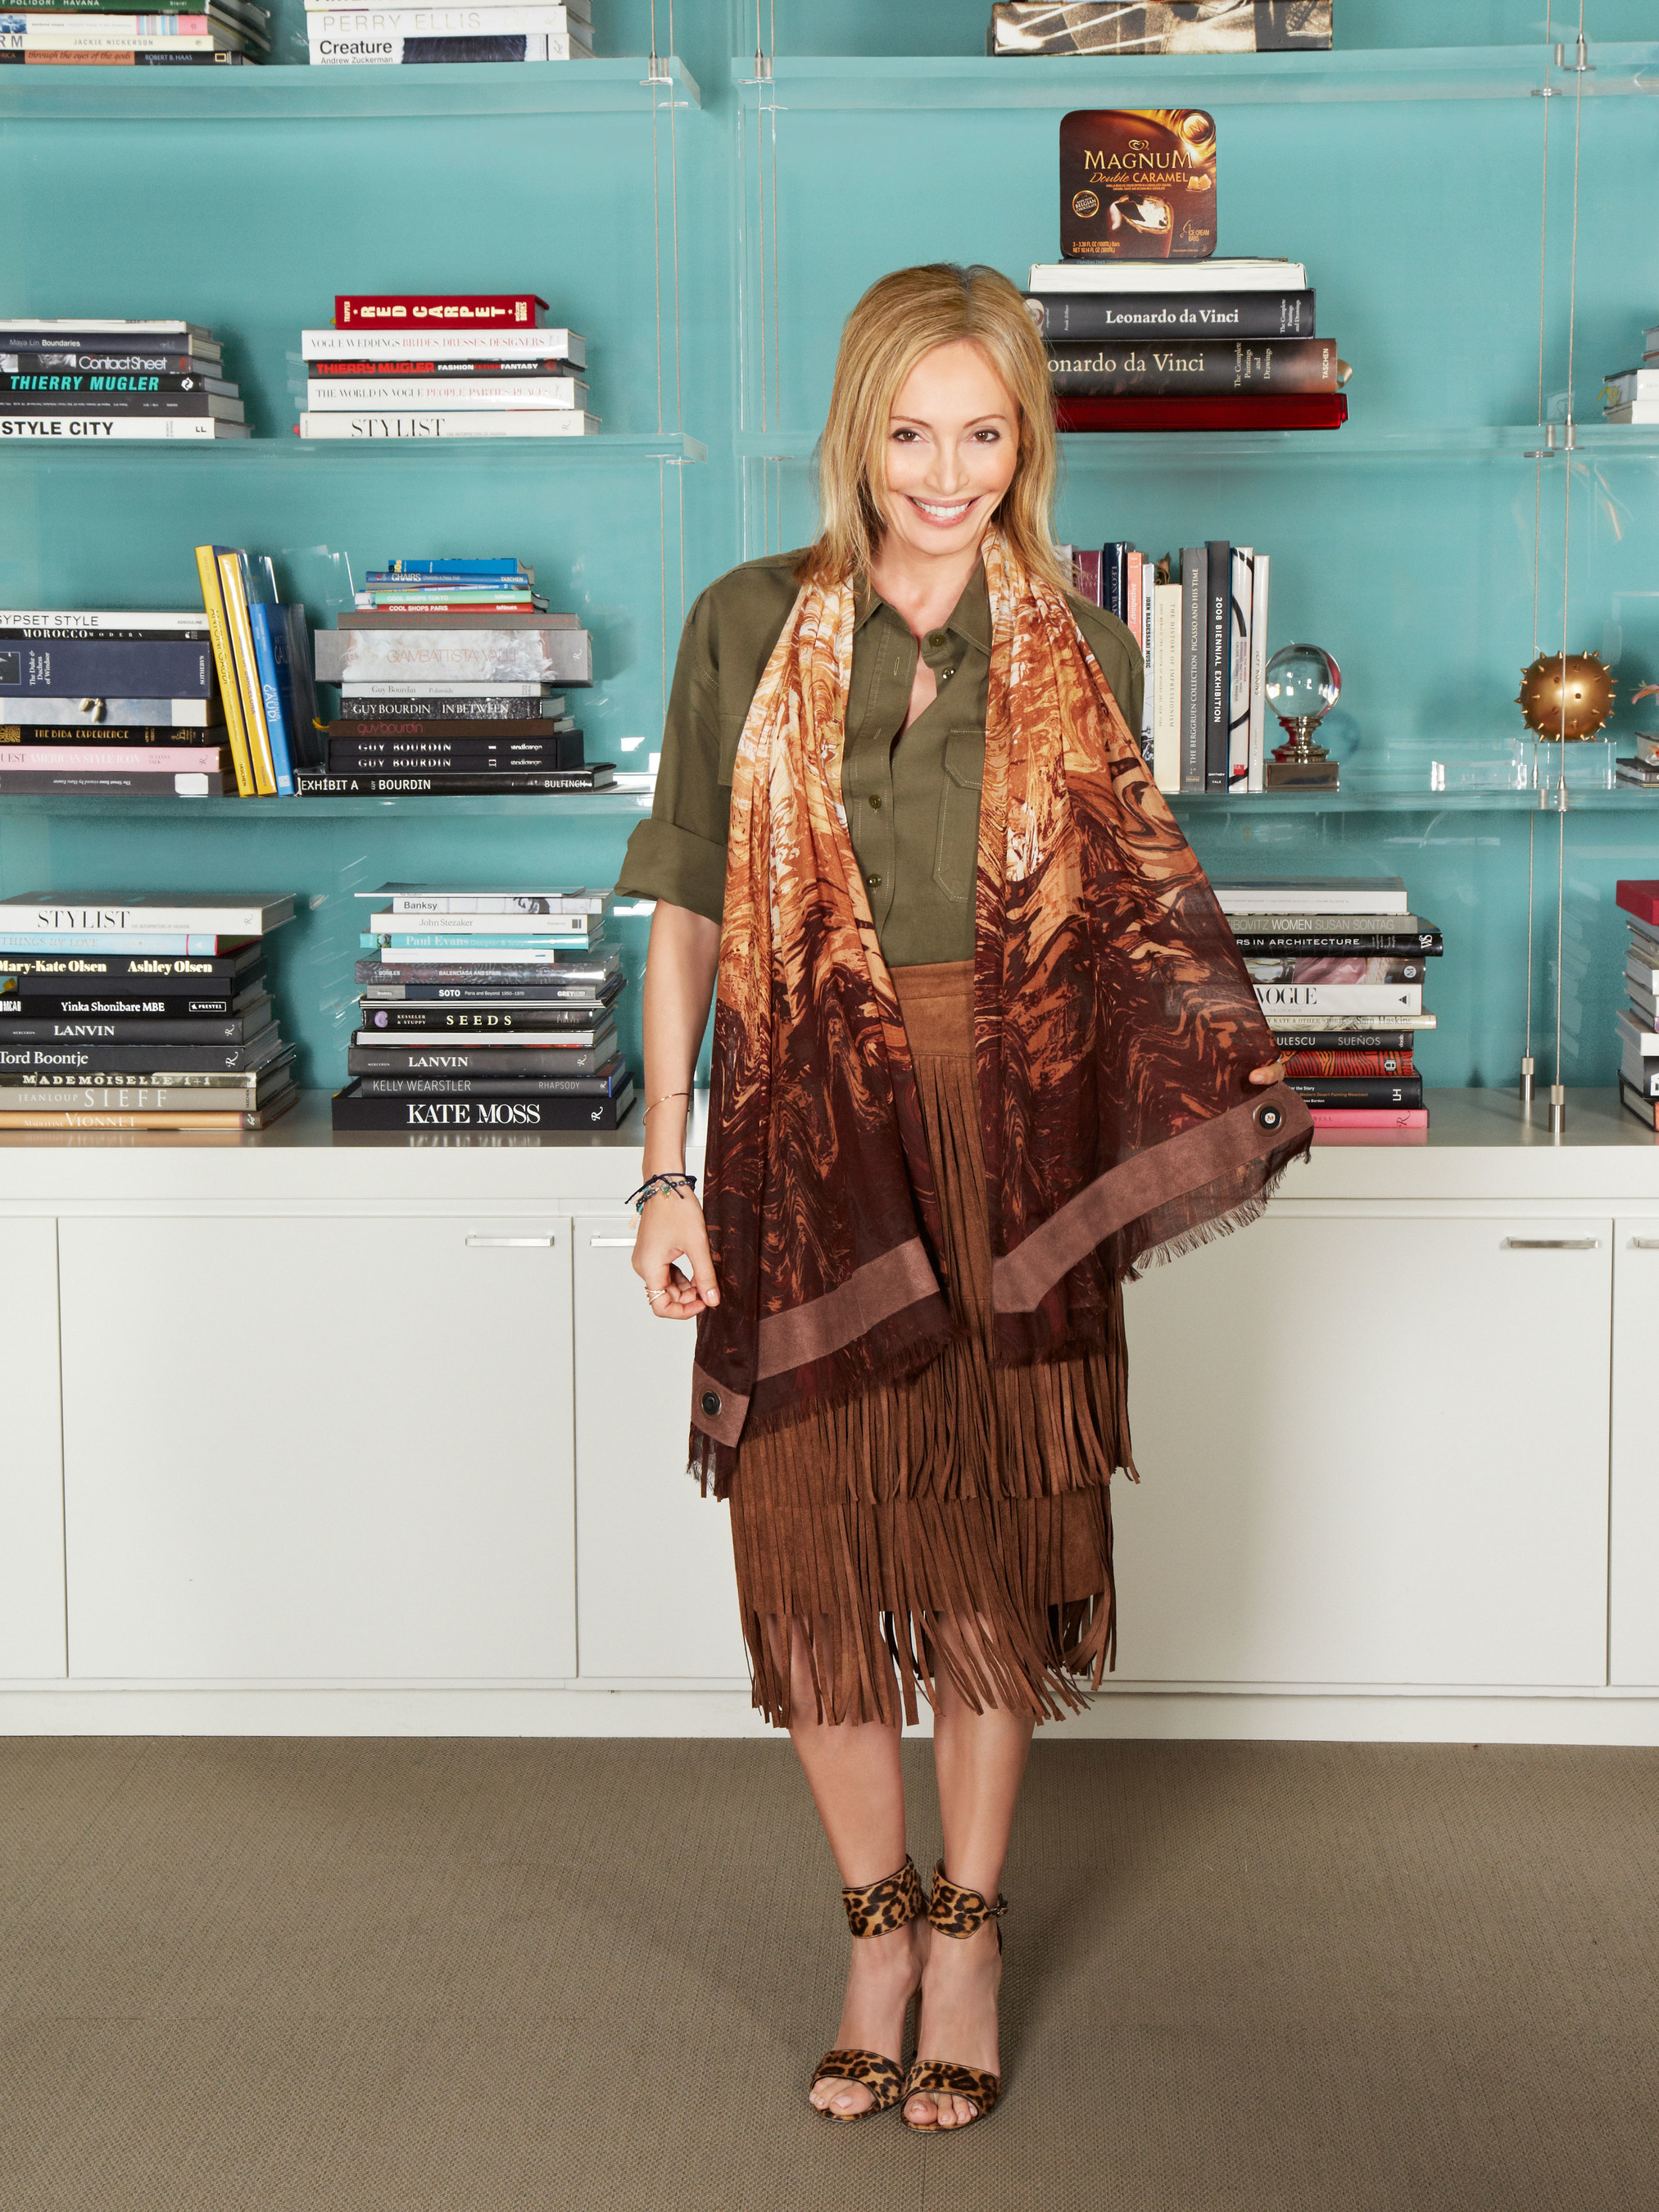 Lubov Azria, chief creative officer of BCBGMAXAZRIA, wears the BCBGMAXAZRIA for MAGNUM Belgian Chocolate Wrap, an innovative accessory infused with an aroma inspired by MAGNUM Belgian Chocolate.